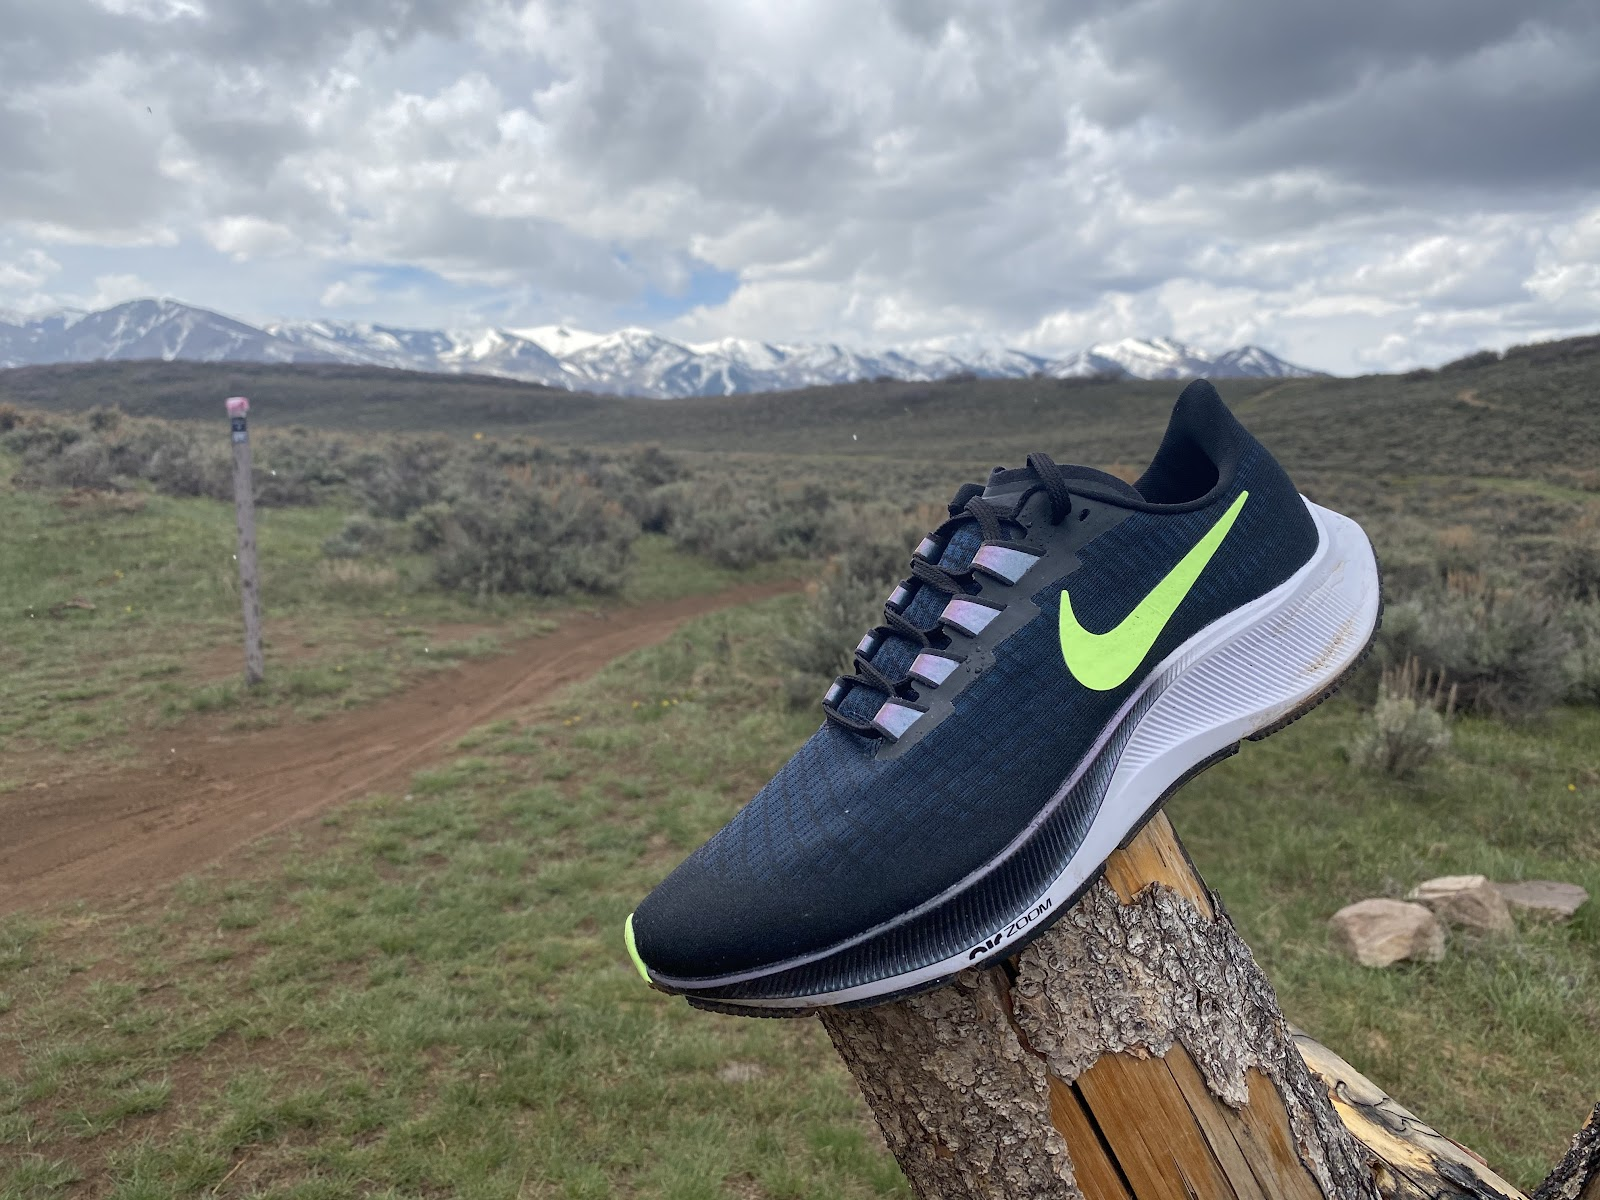 productos quimicos estático Novelista  Road Trail Run: Nike Zoom Pegasus 37 Initial Video Review and Shoe Details